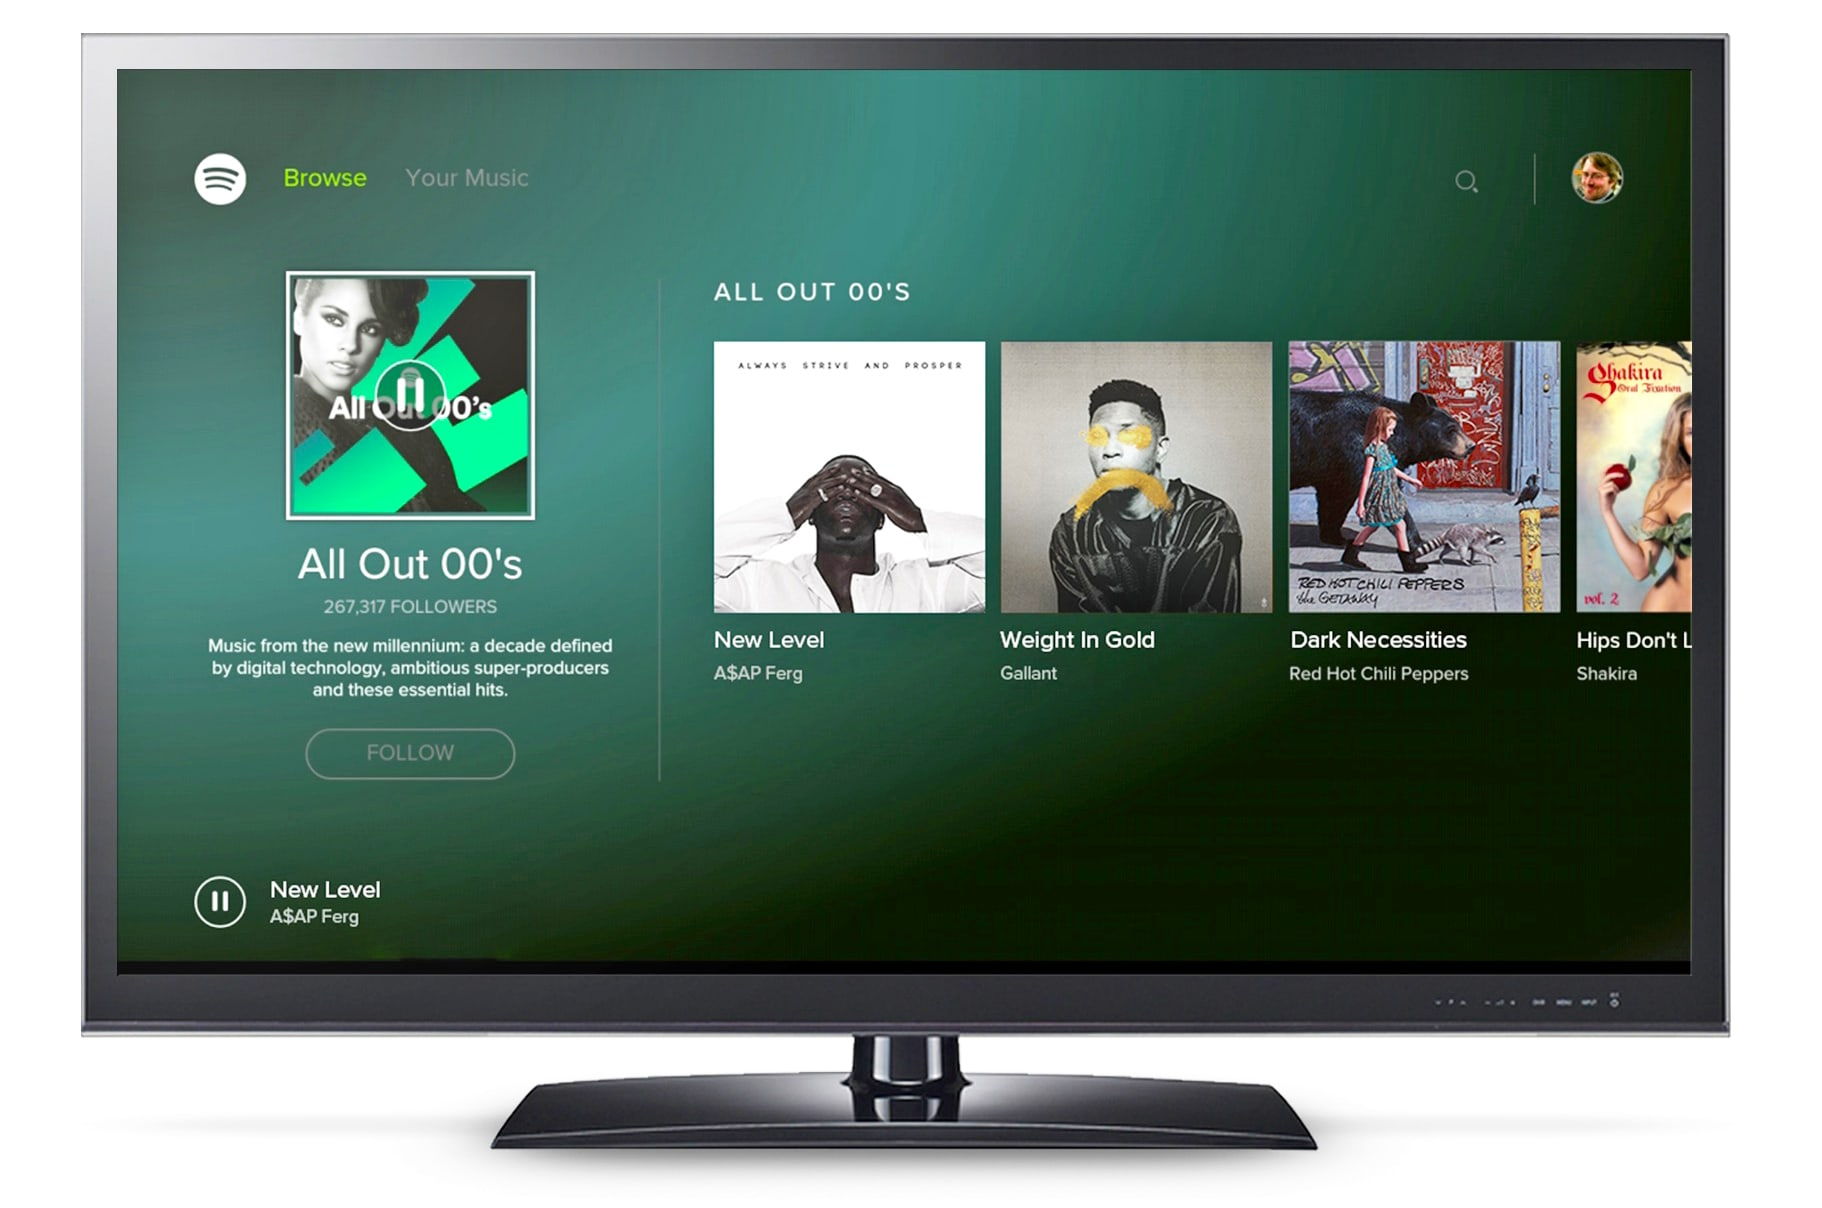 Spotify Android Tv